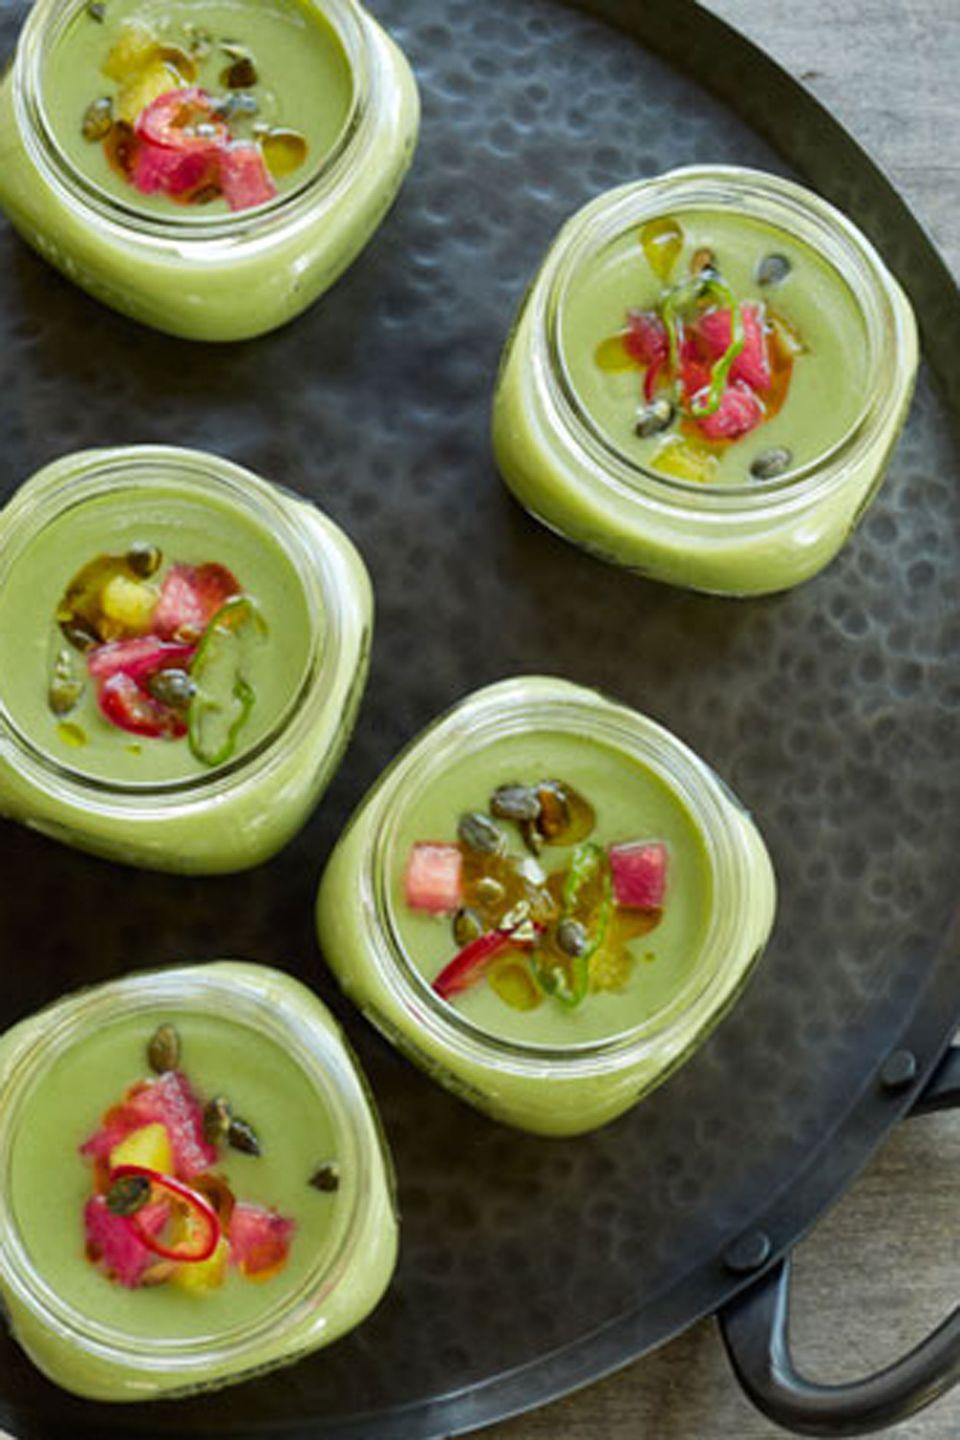 """<p>Refreshingly light and just a little bit sweet and spicy, this cool, colorful soup is a novel twist classic gazpacho.</p><p><strong><a href=""""https://www.countryliving.com/food-drinks/recipes/a5315/cucumber-gazpacho-watermelon-mint-recipe-clx0714/"""" rel=""""nofollow noopener"""" target=""""_blank"""" data-ylk=""""slk:Get the recipe"""" class=""""link rapid-noclick-resp"""">Get the recipe</a>.</strong></p>"""